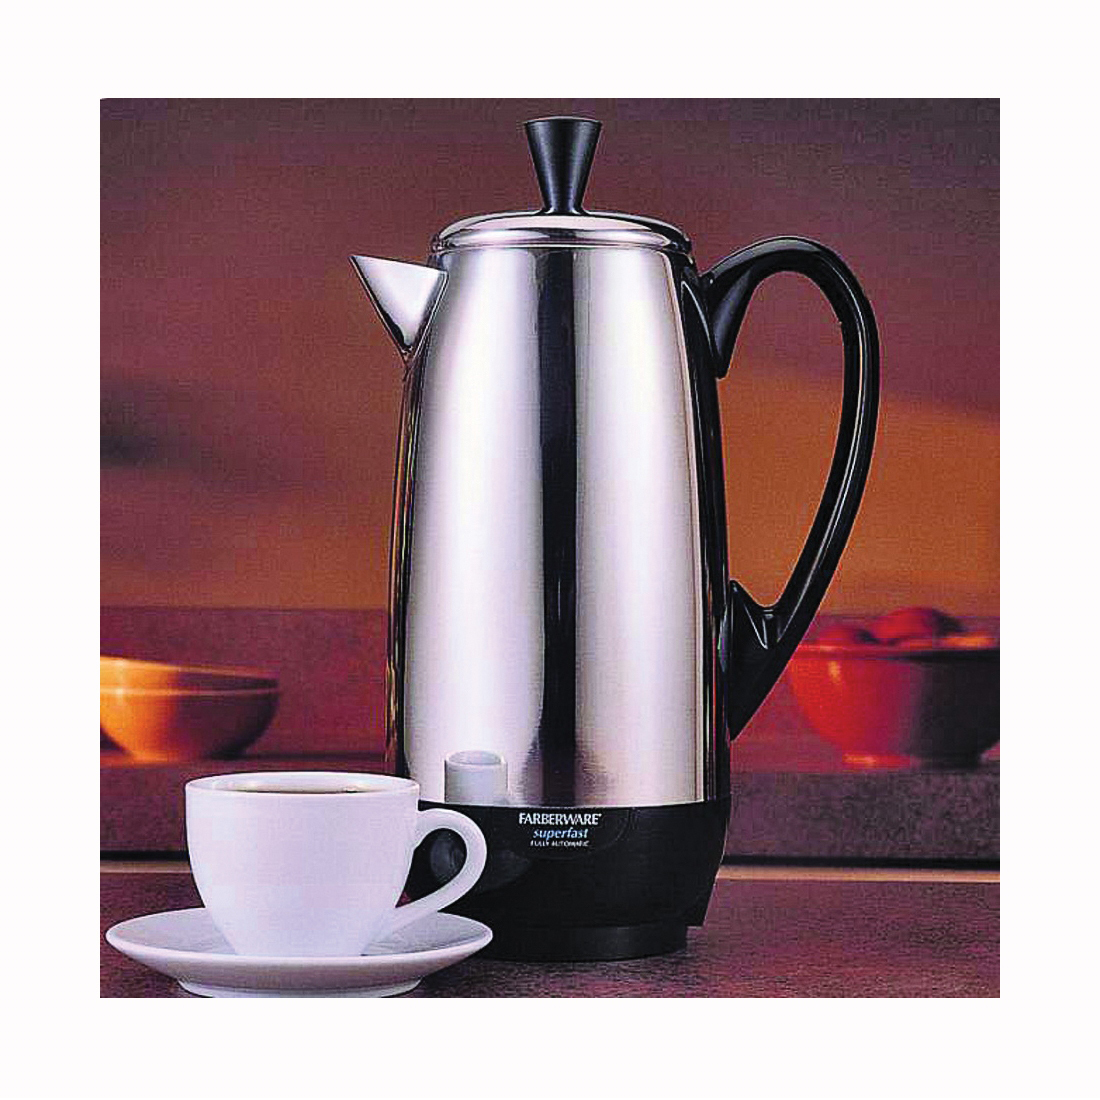 Picture of FARBERWARE FCP412 Electric Percolator, 2 to 12 Cup Capacity, 1 W, Stainless Steel, Knob Control